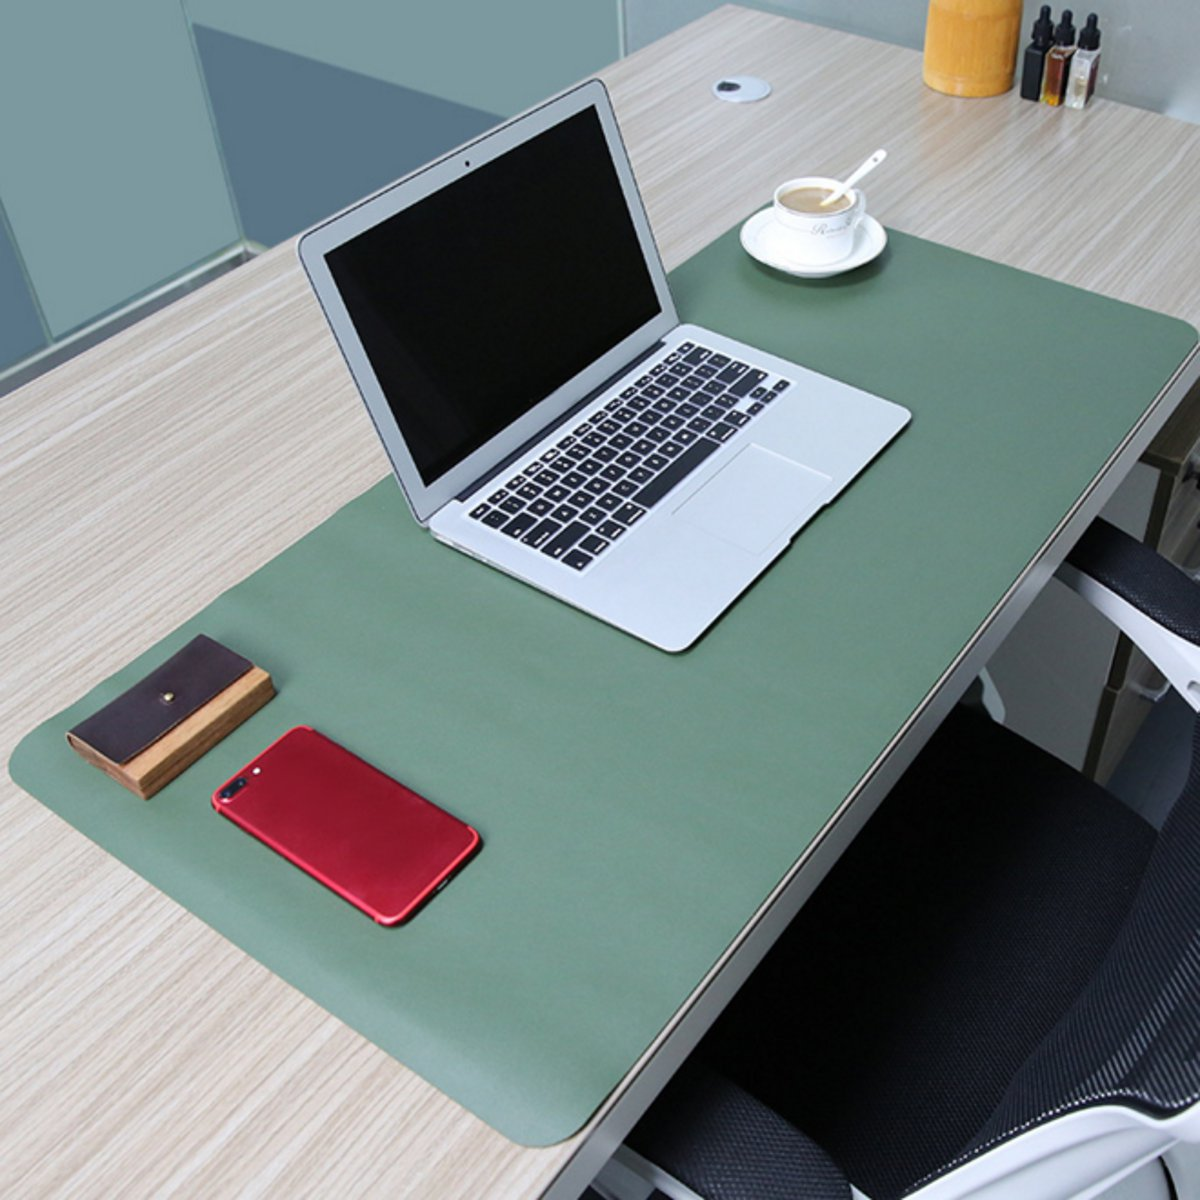 80x40cm Both Sides Two Colors Extended Pu Leather Mouse